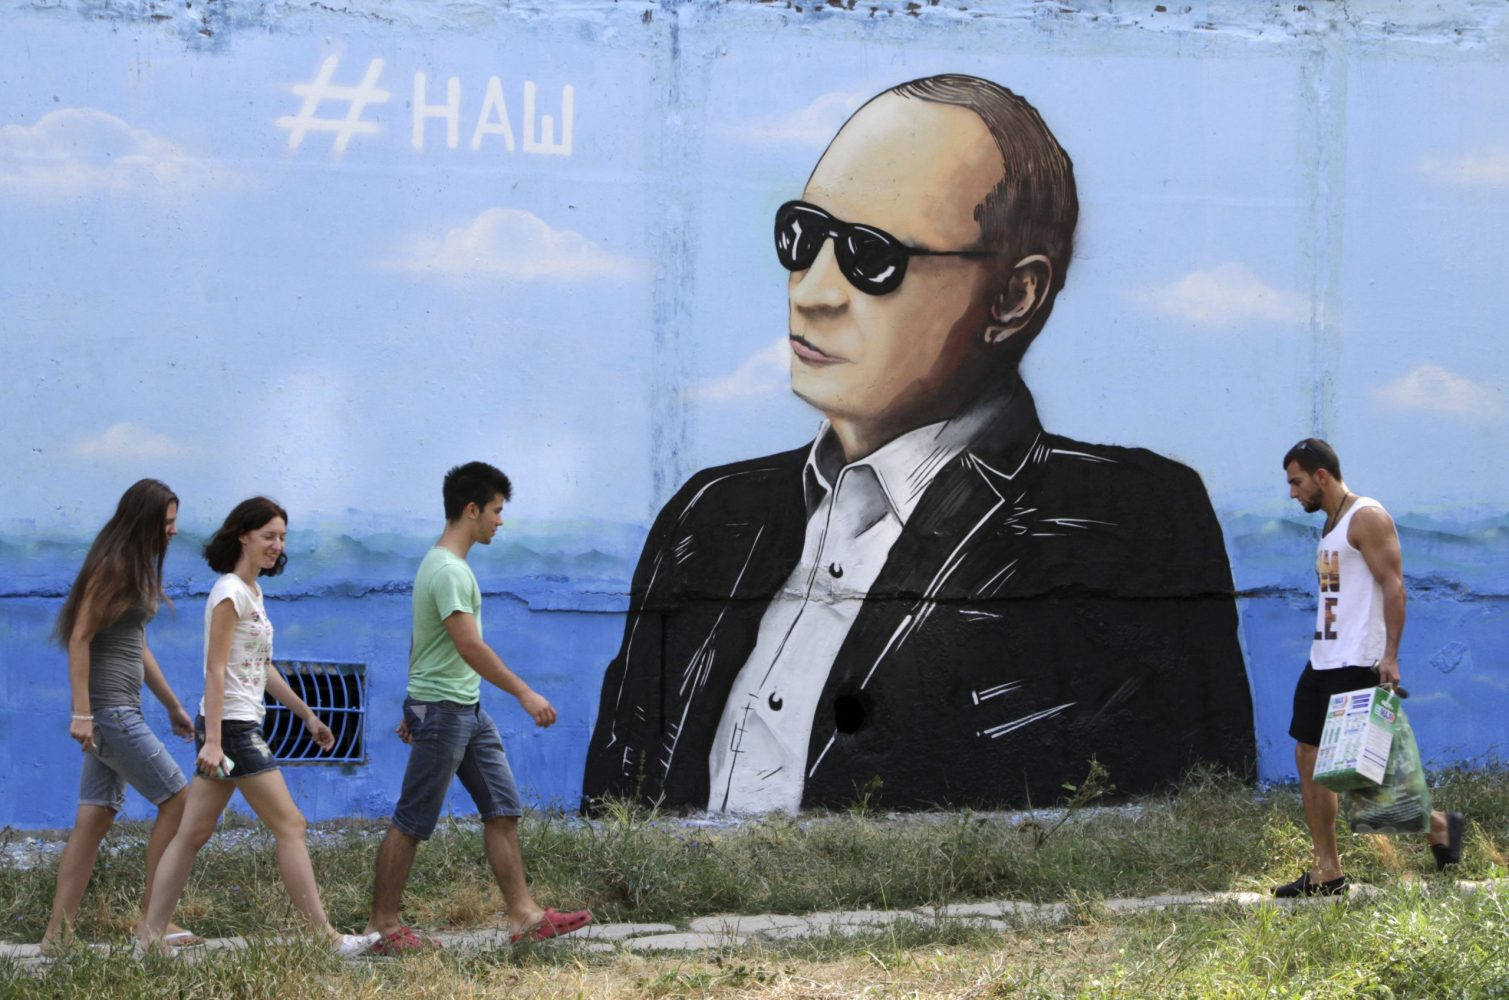 Crimea could become an expensive liability for Putin